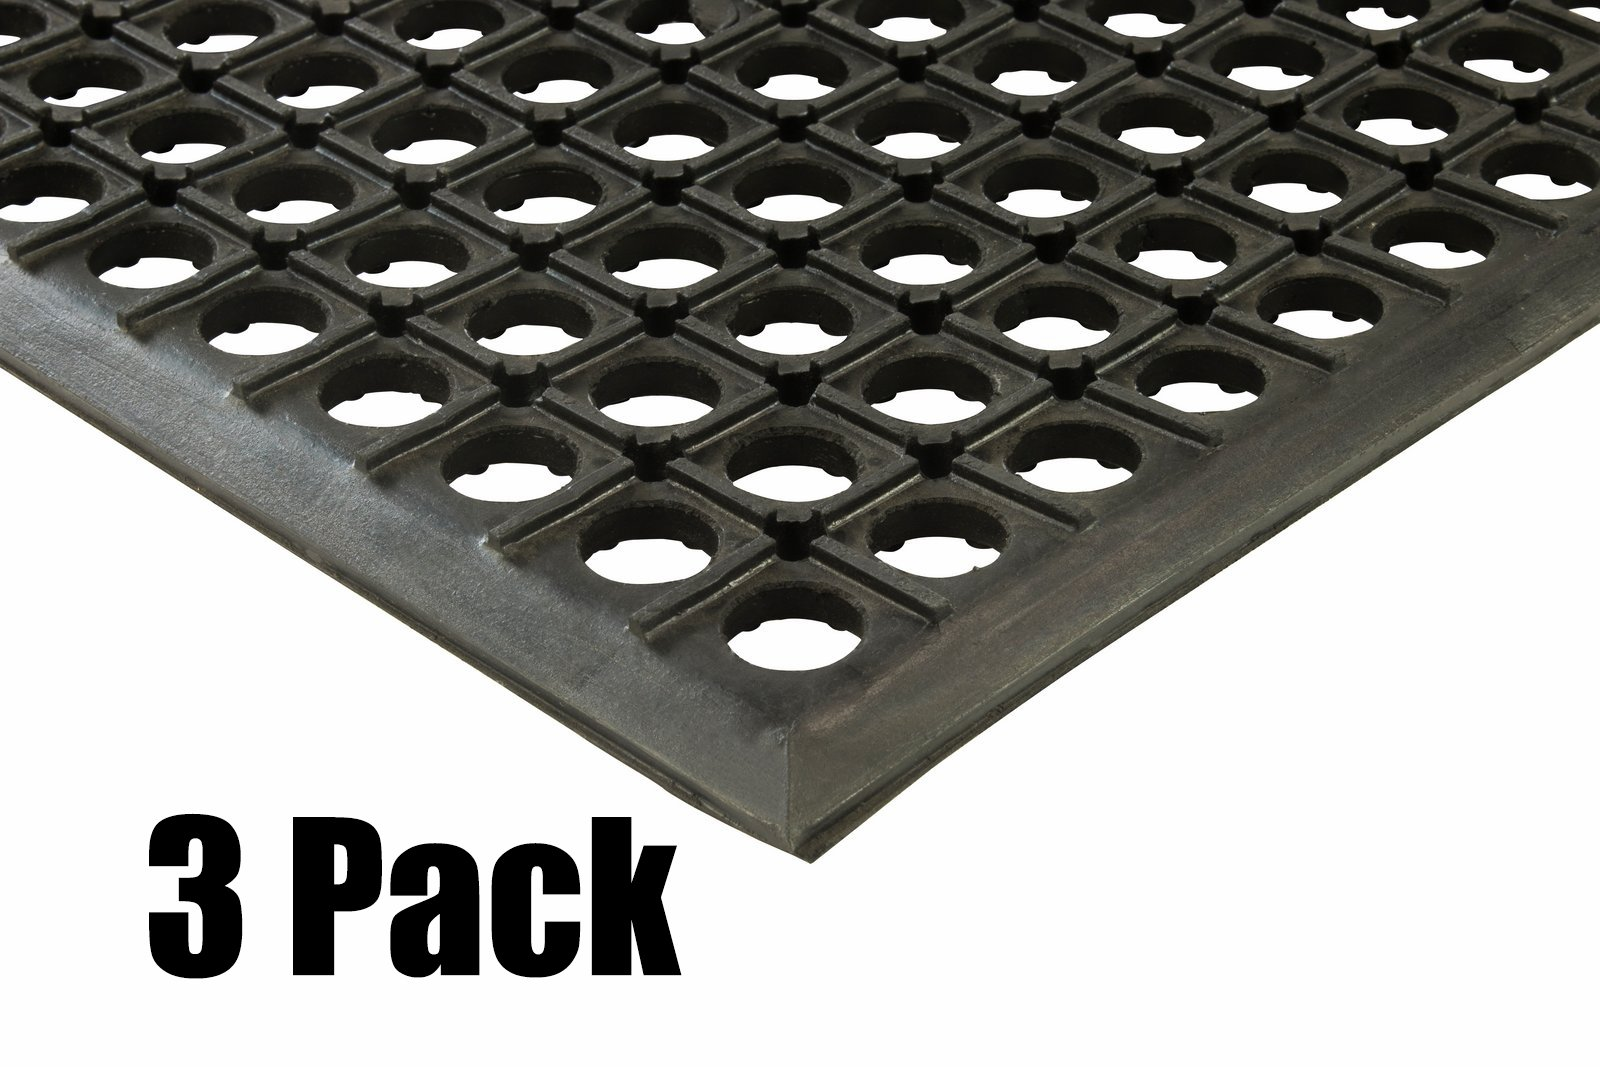 (3) Erie Tools 3x5 Rubber Drainage Floor Mat 36in. x 60in. Anti-Fatigue Anti-slip by Erie Tools